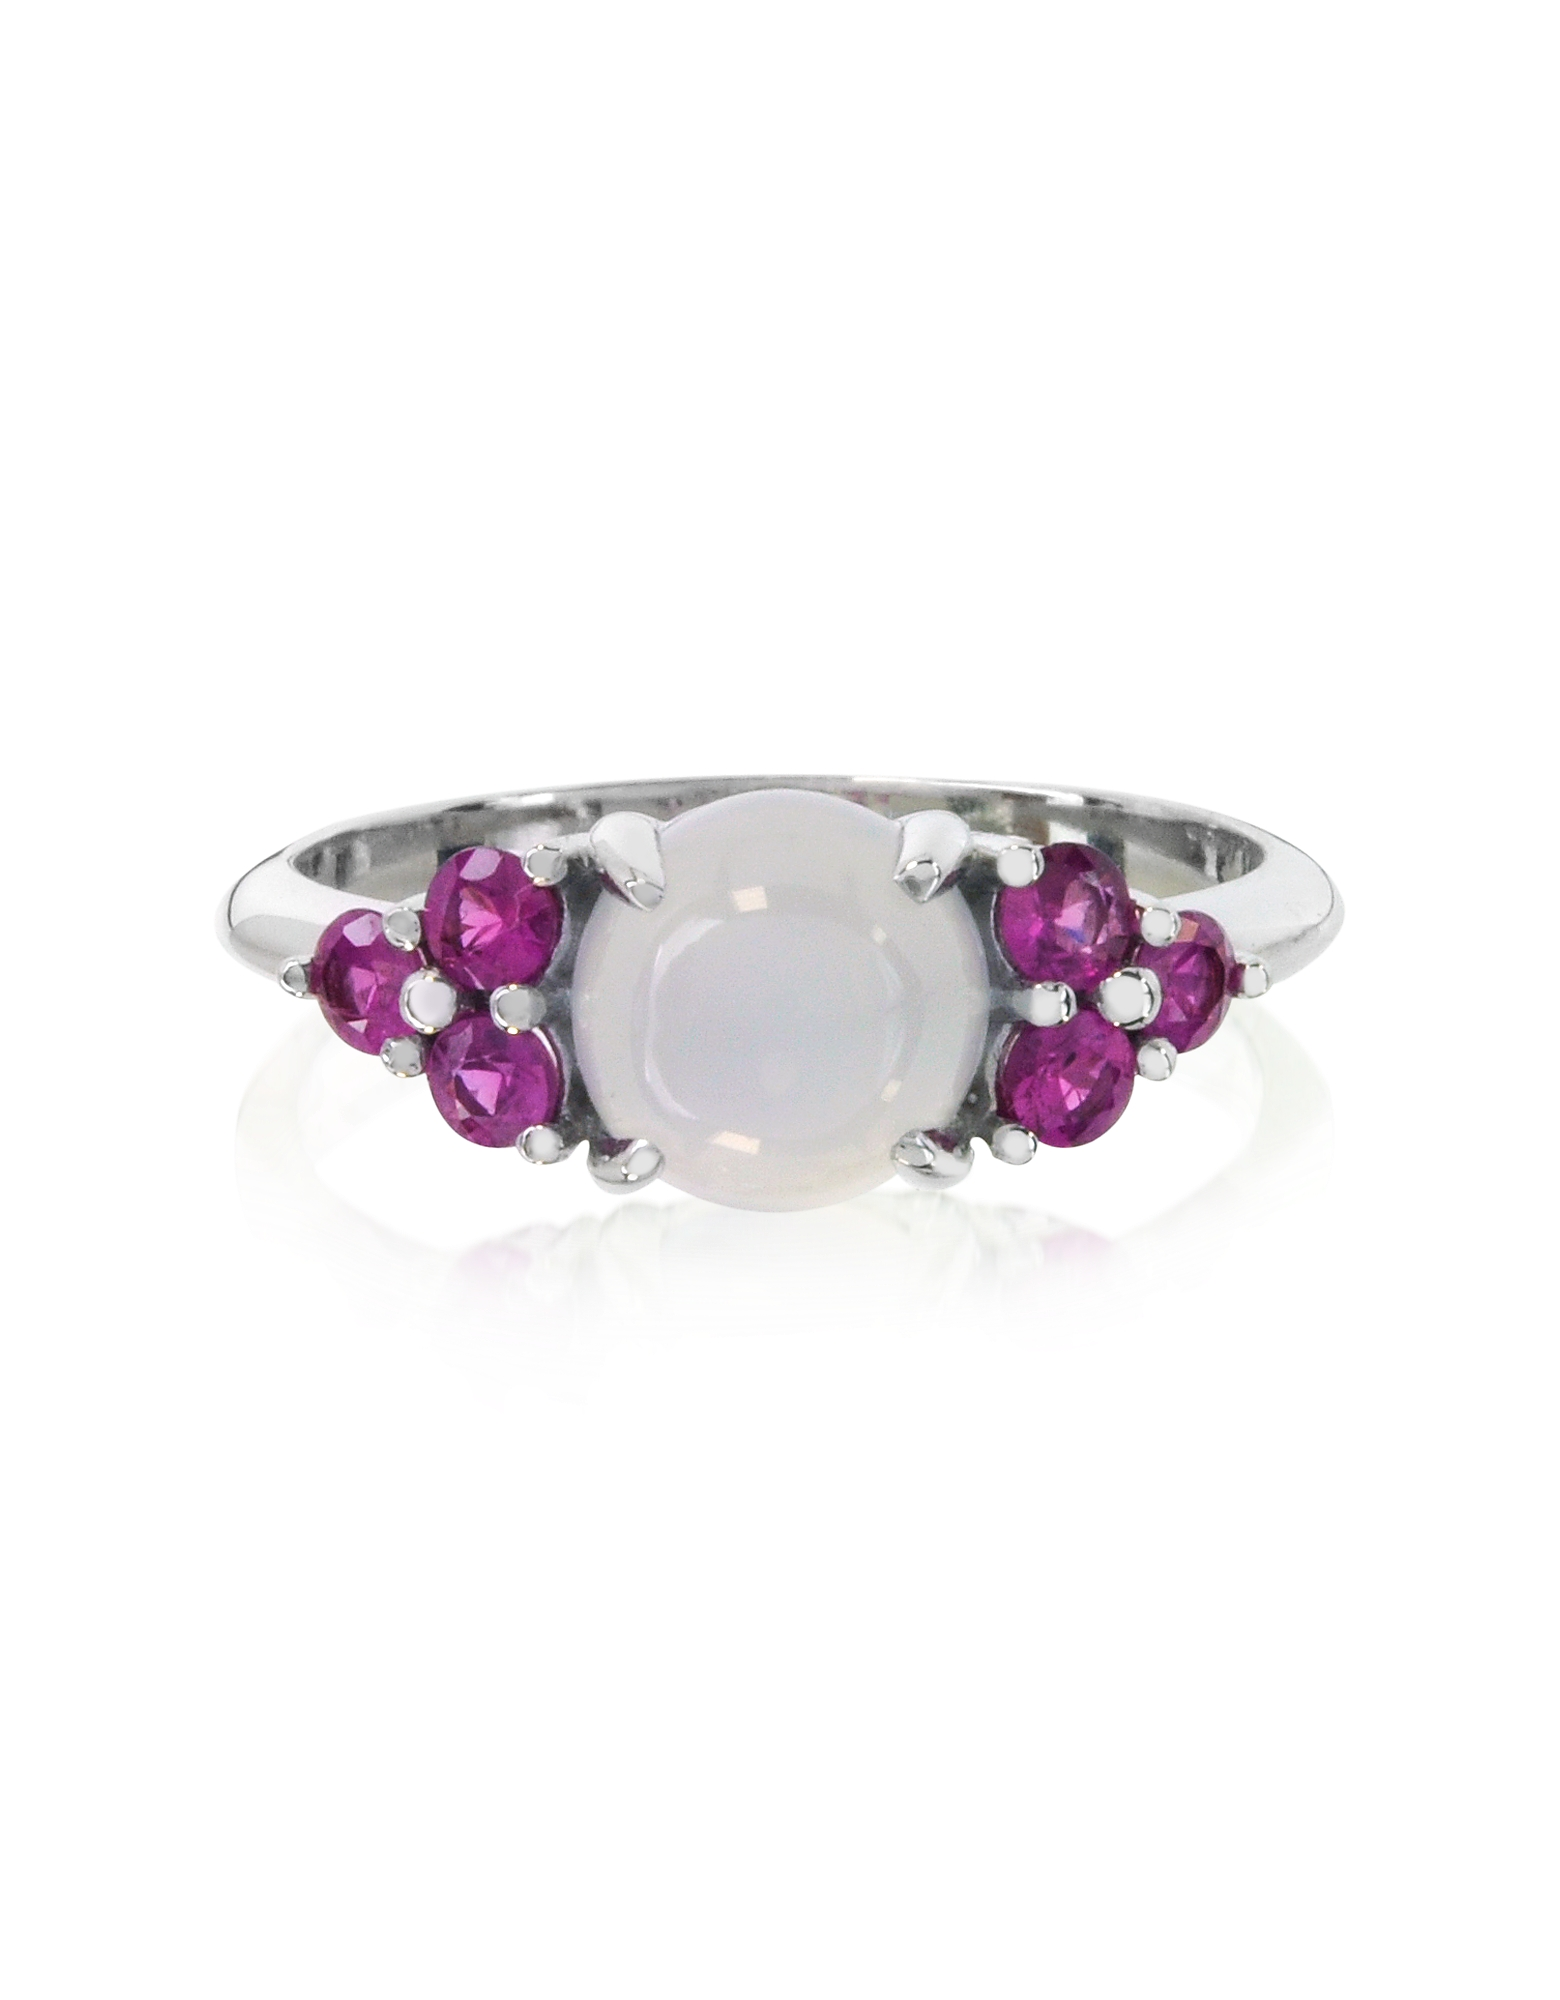 Mia & Beverly Rings, Chalcedony and Fuchsia Sapphires 18K White Gold Ring